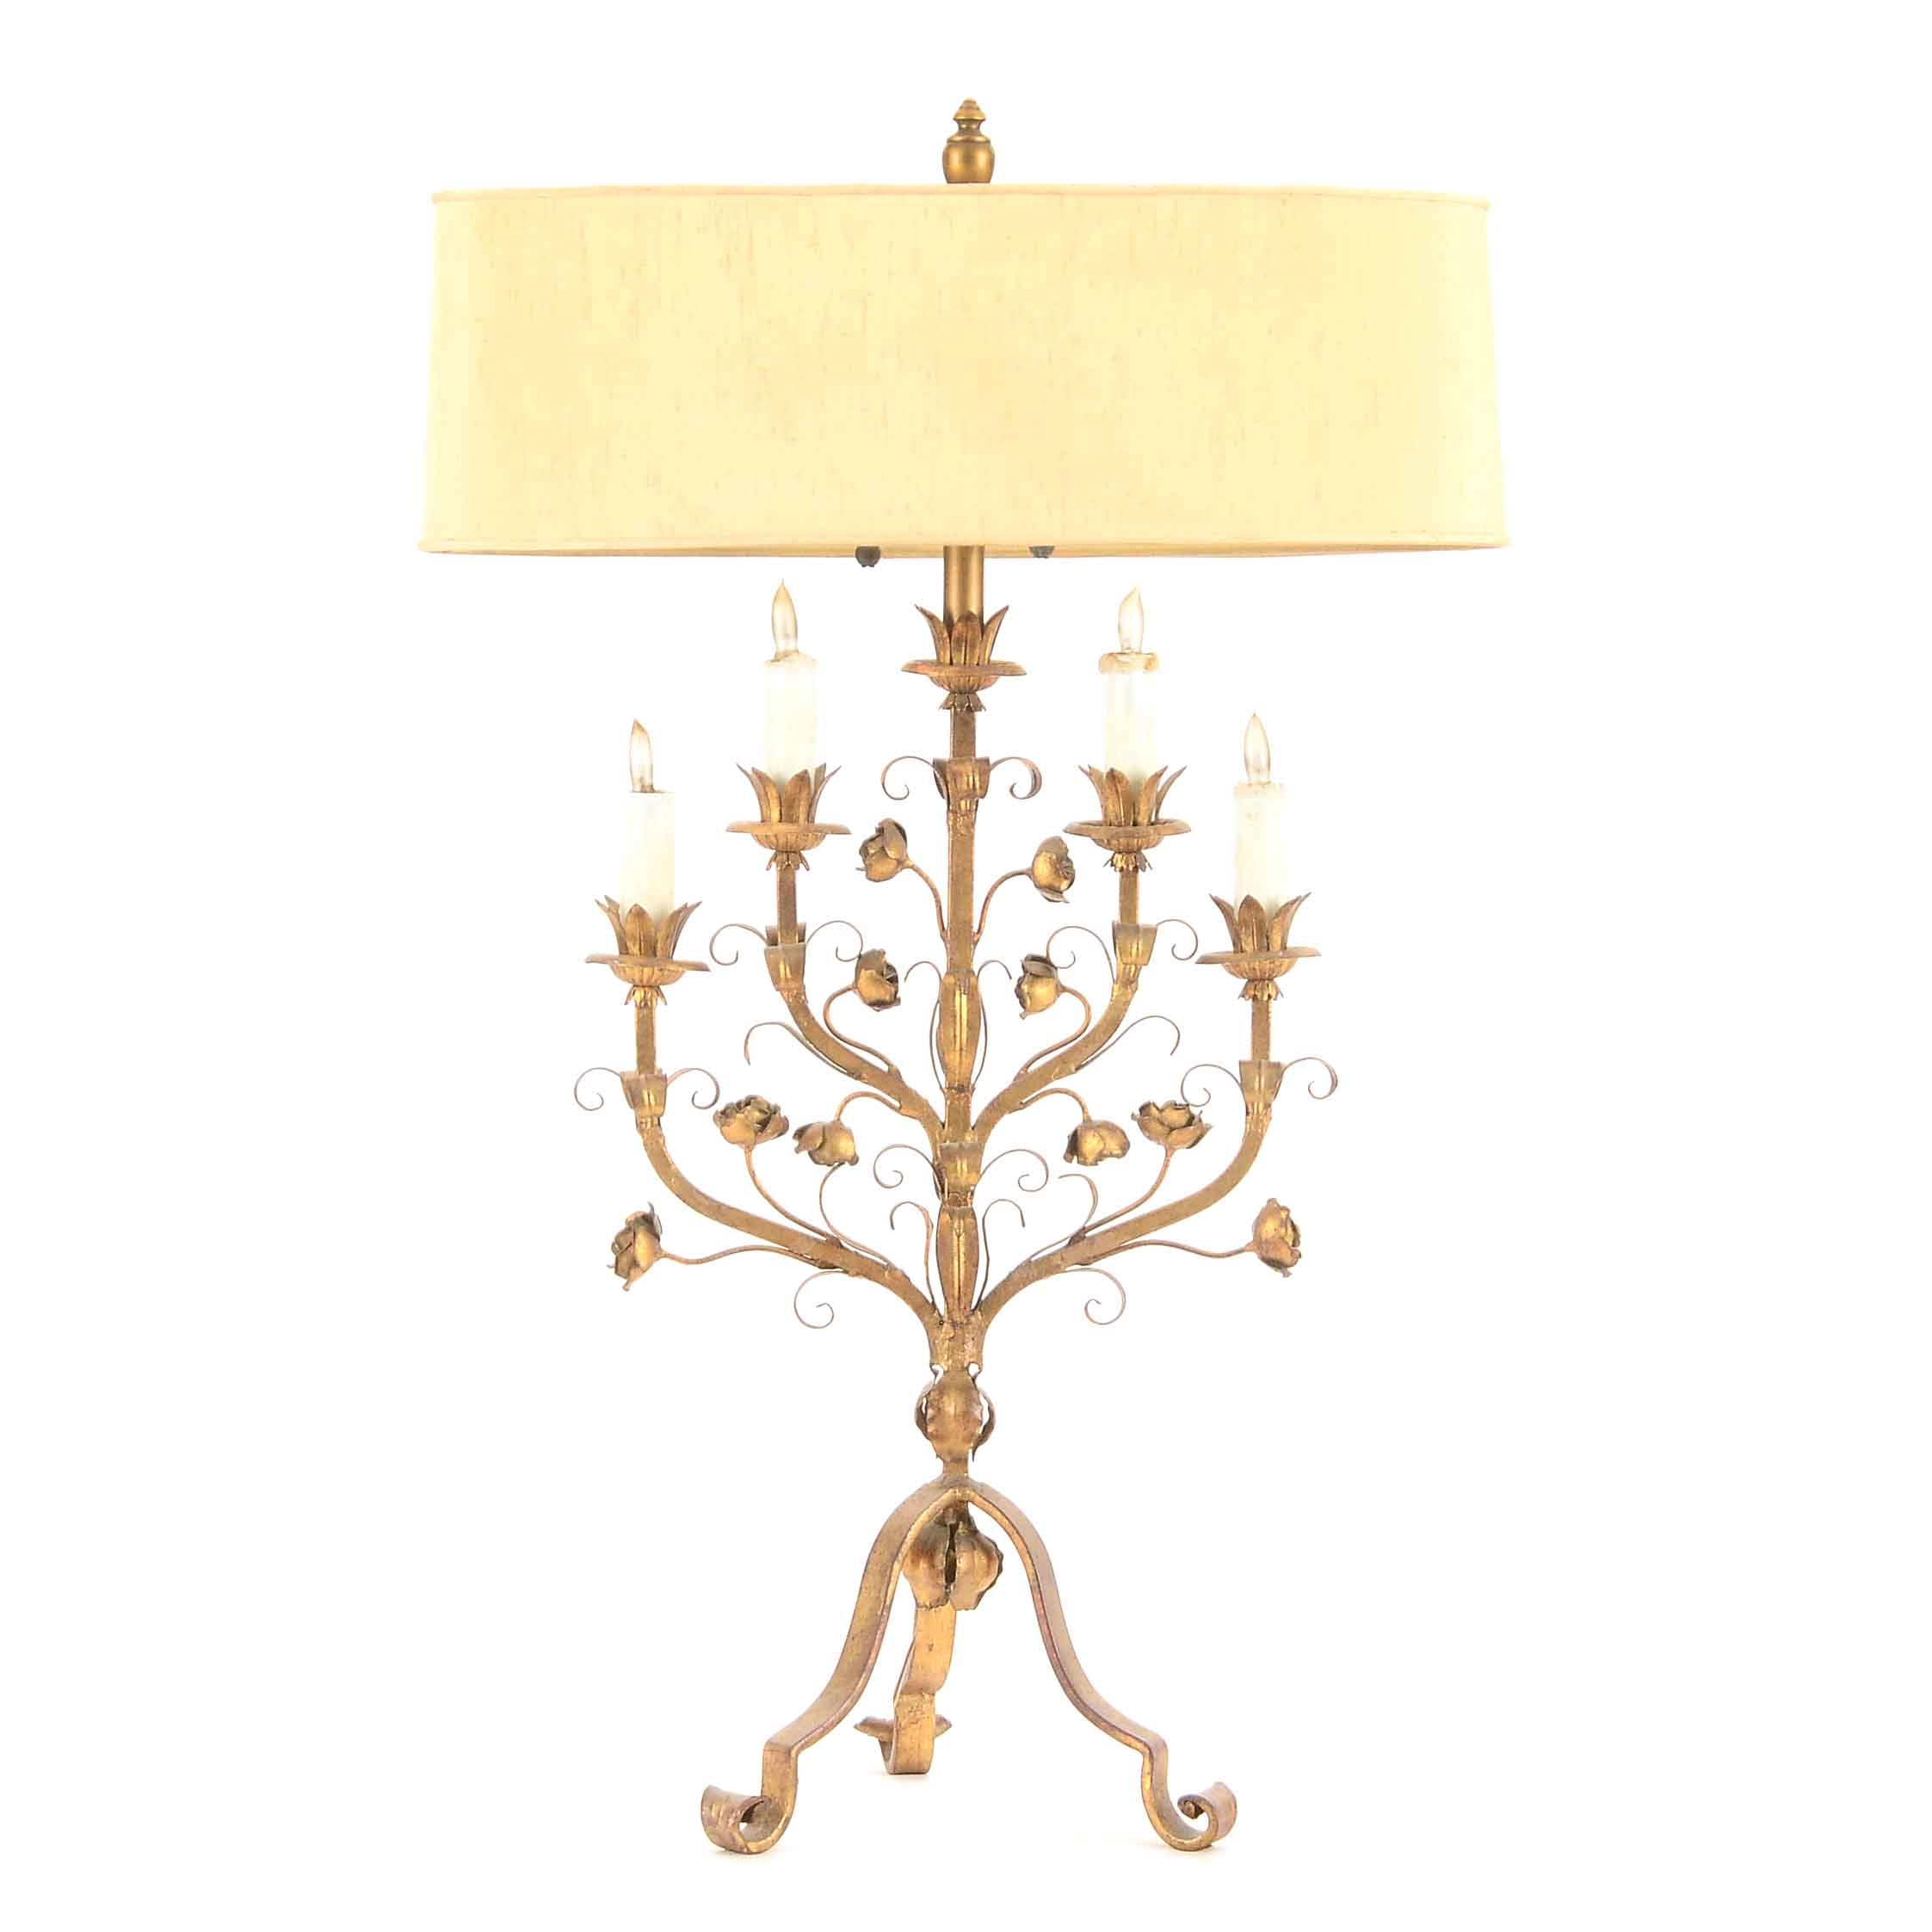 Vintage Candelabra Table Lamp